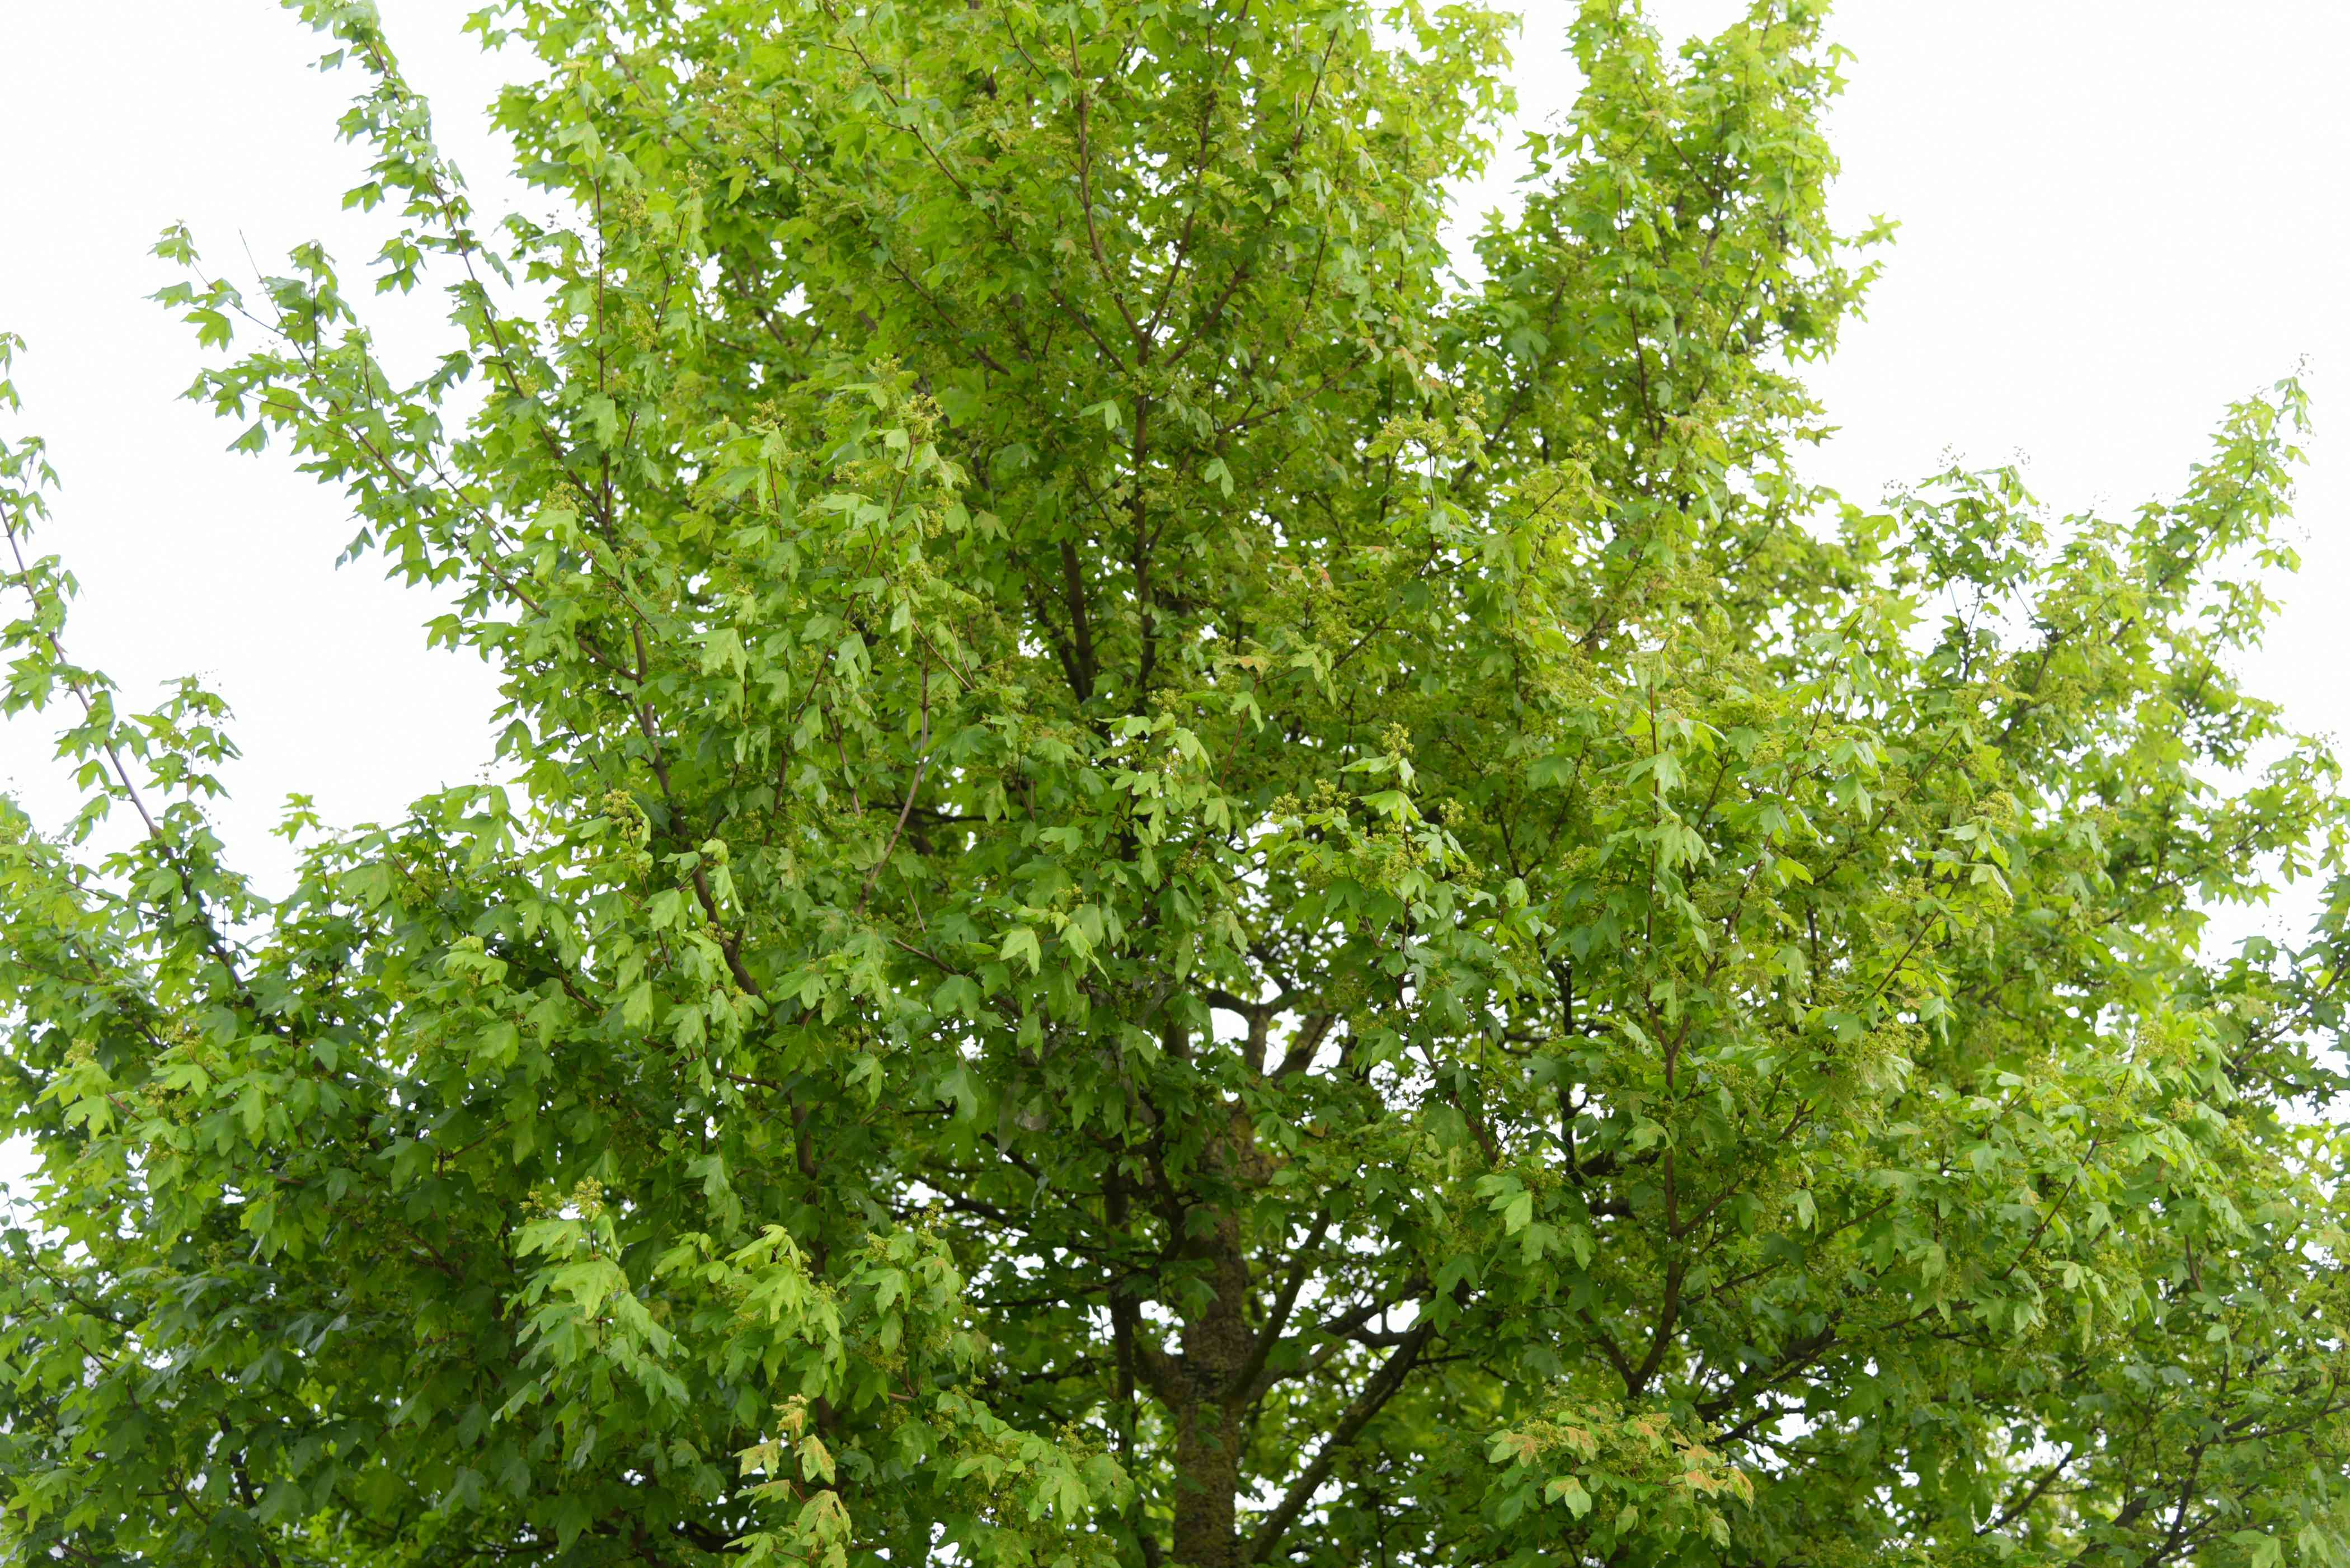 Hedge maple tree branches with bright green leaves growing upwards